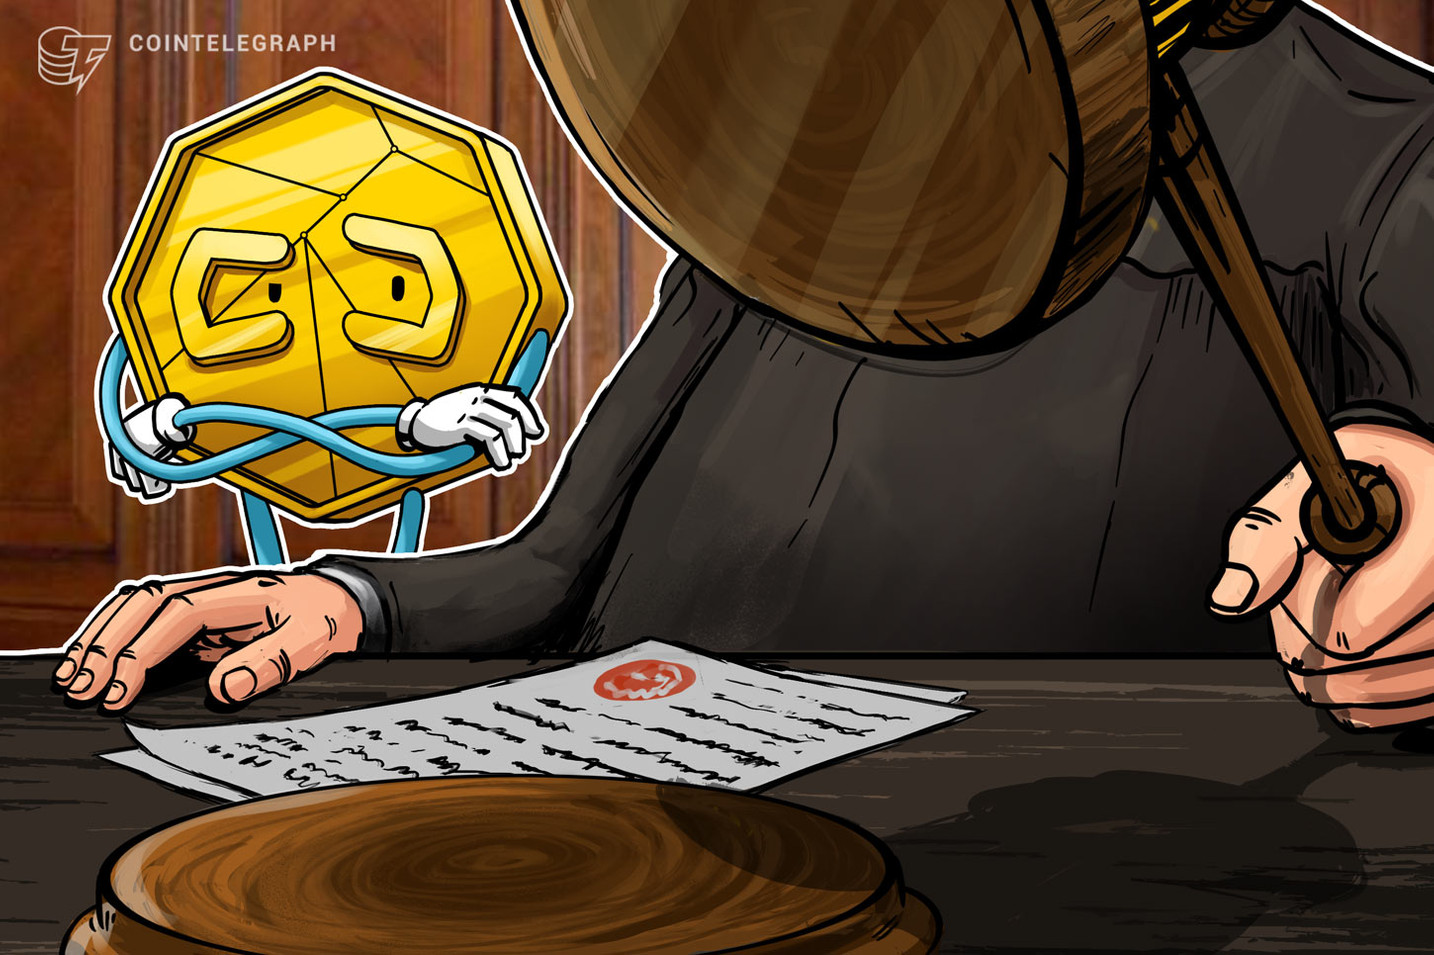 Cambodian Regulators Say Dealing in Crypto Without License Is Illegal